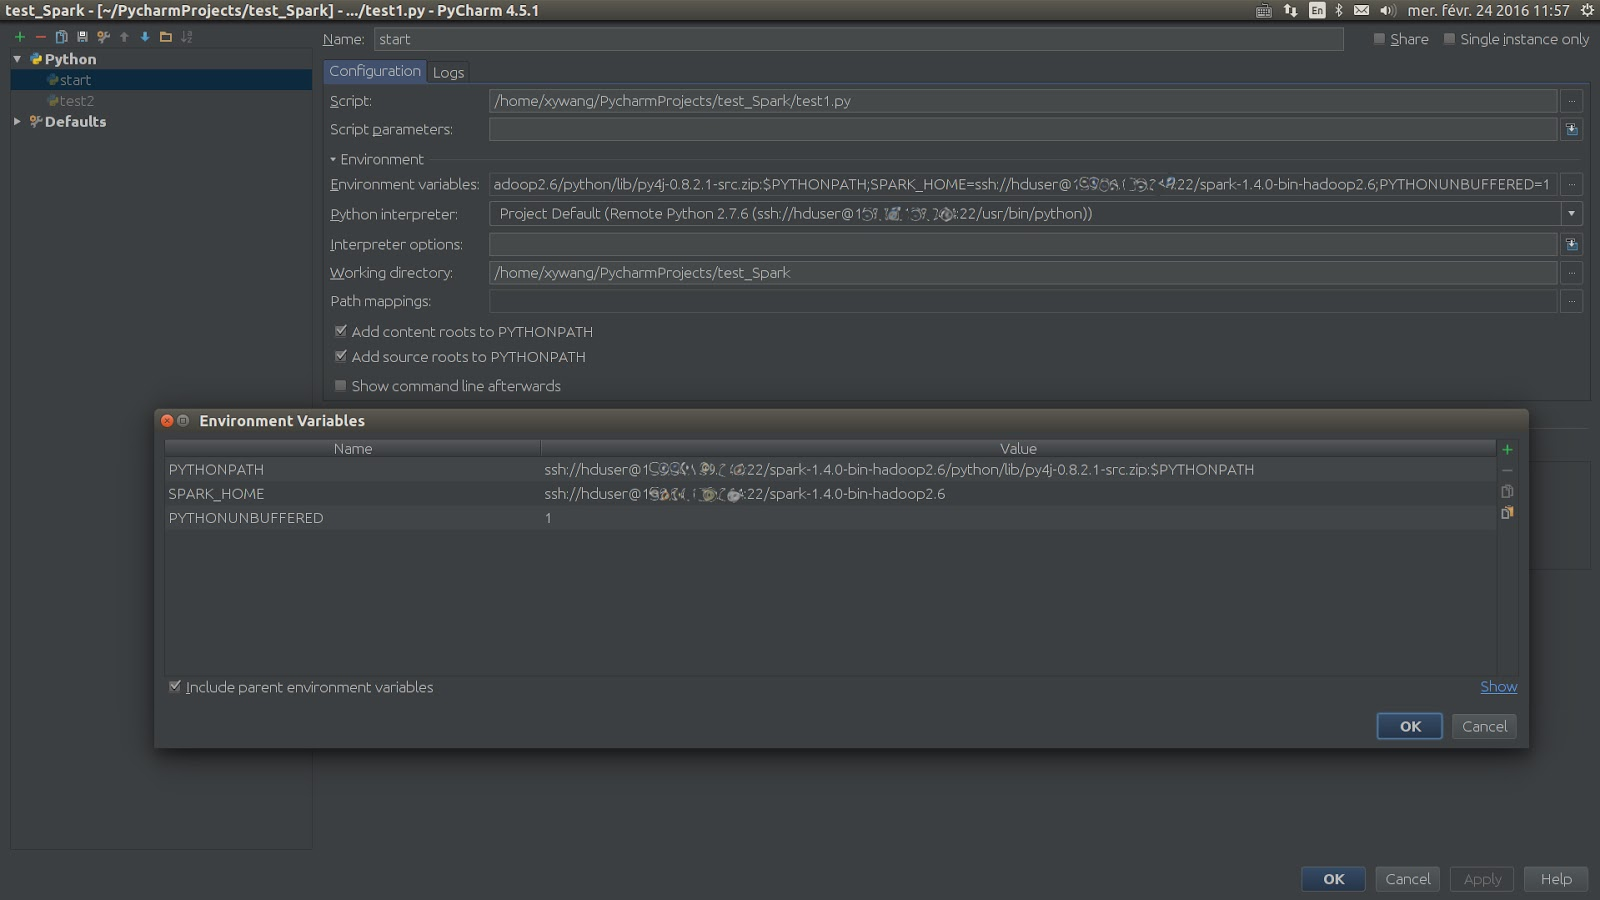 Xinyu Wang's Blog: How to programe in pyspark on Pycharm locally